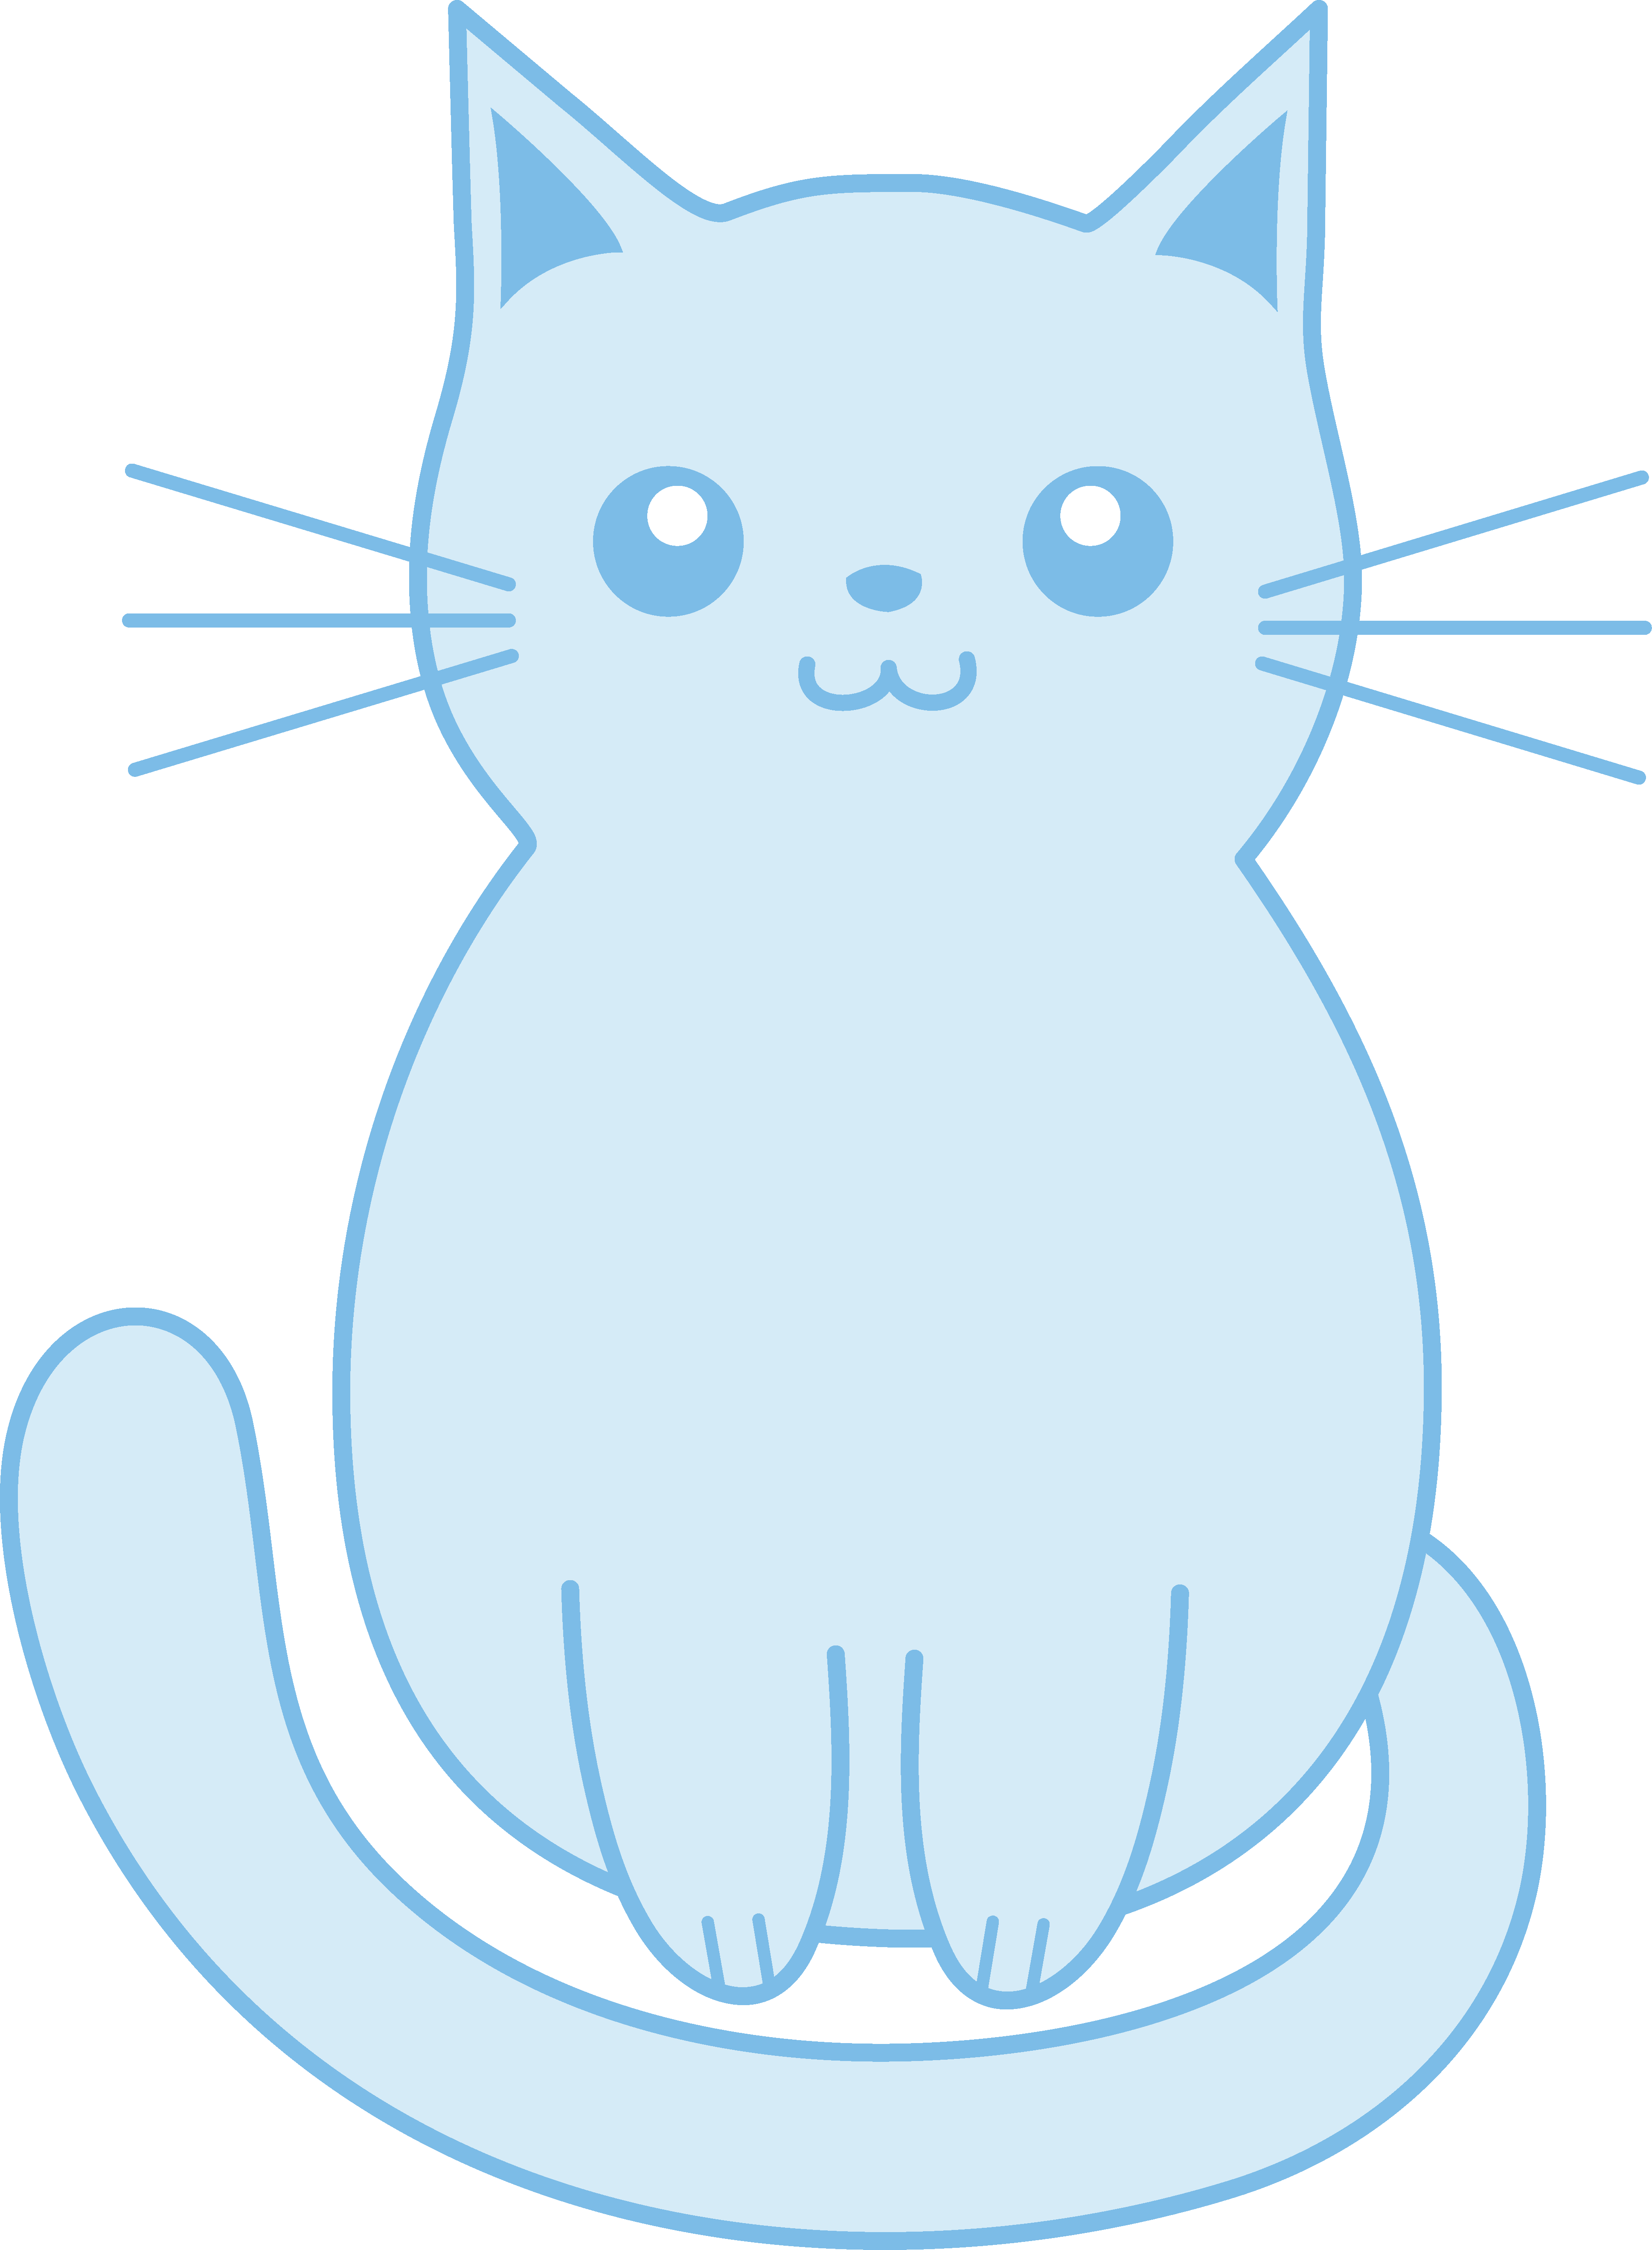 Blue cat clipart clip art black and white Cute Blue Kitten Clip Art - Free Clip Art clip art black and white